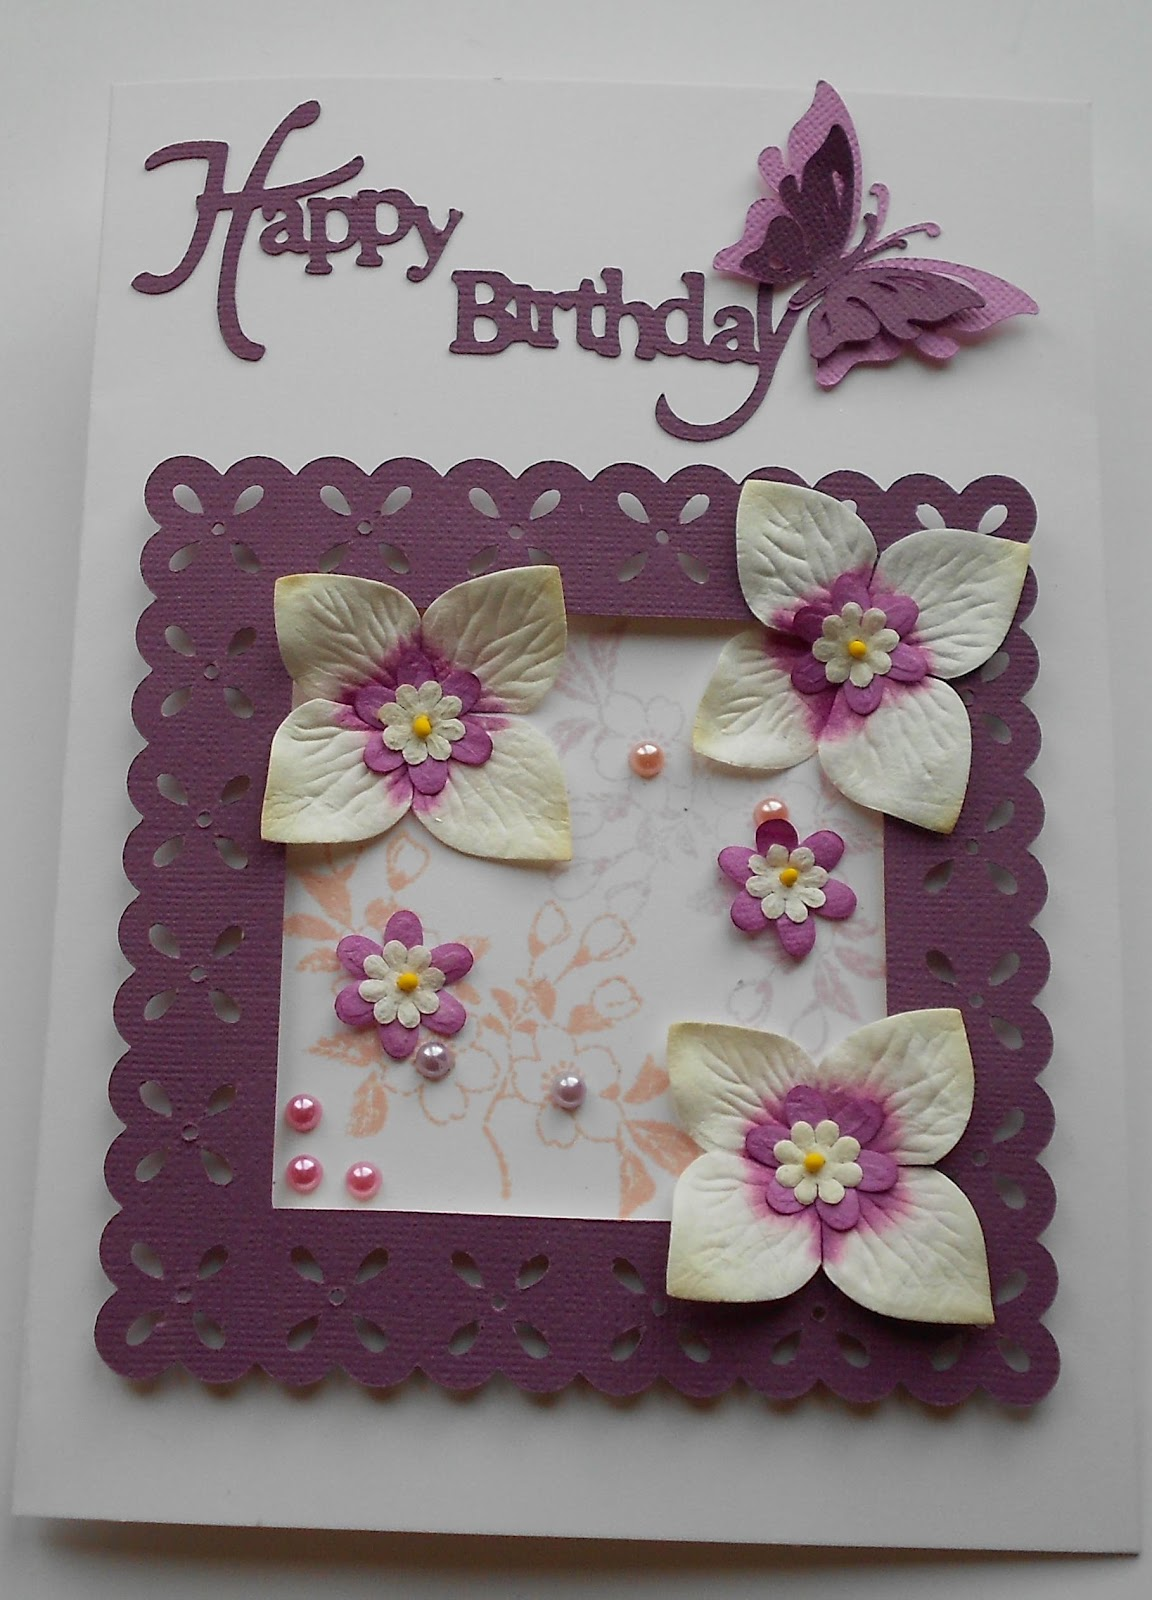 Sues Art Of Craft In The Frame For A Birthday Card